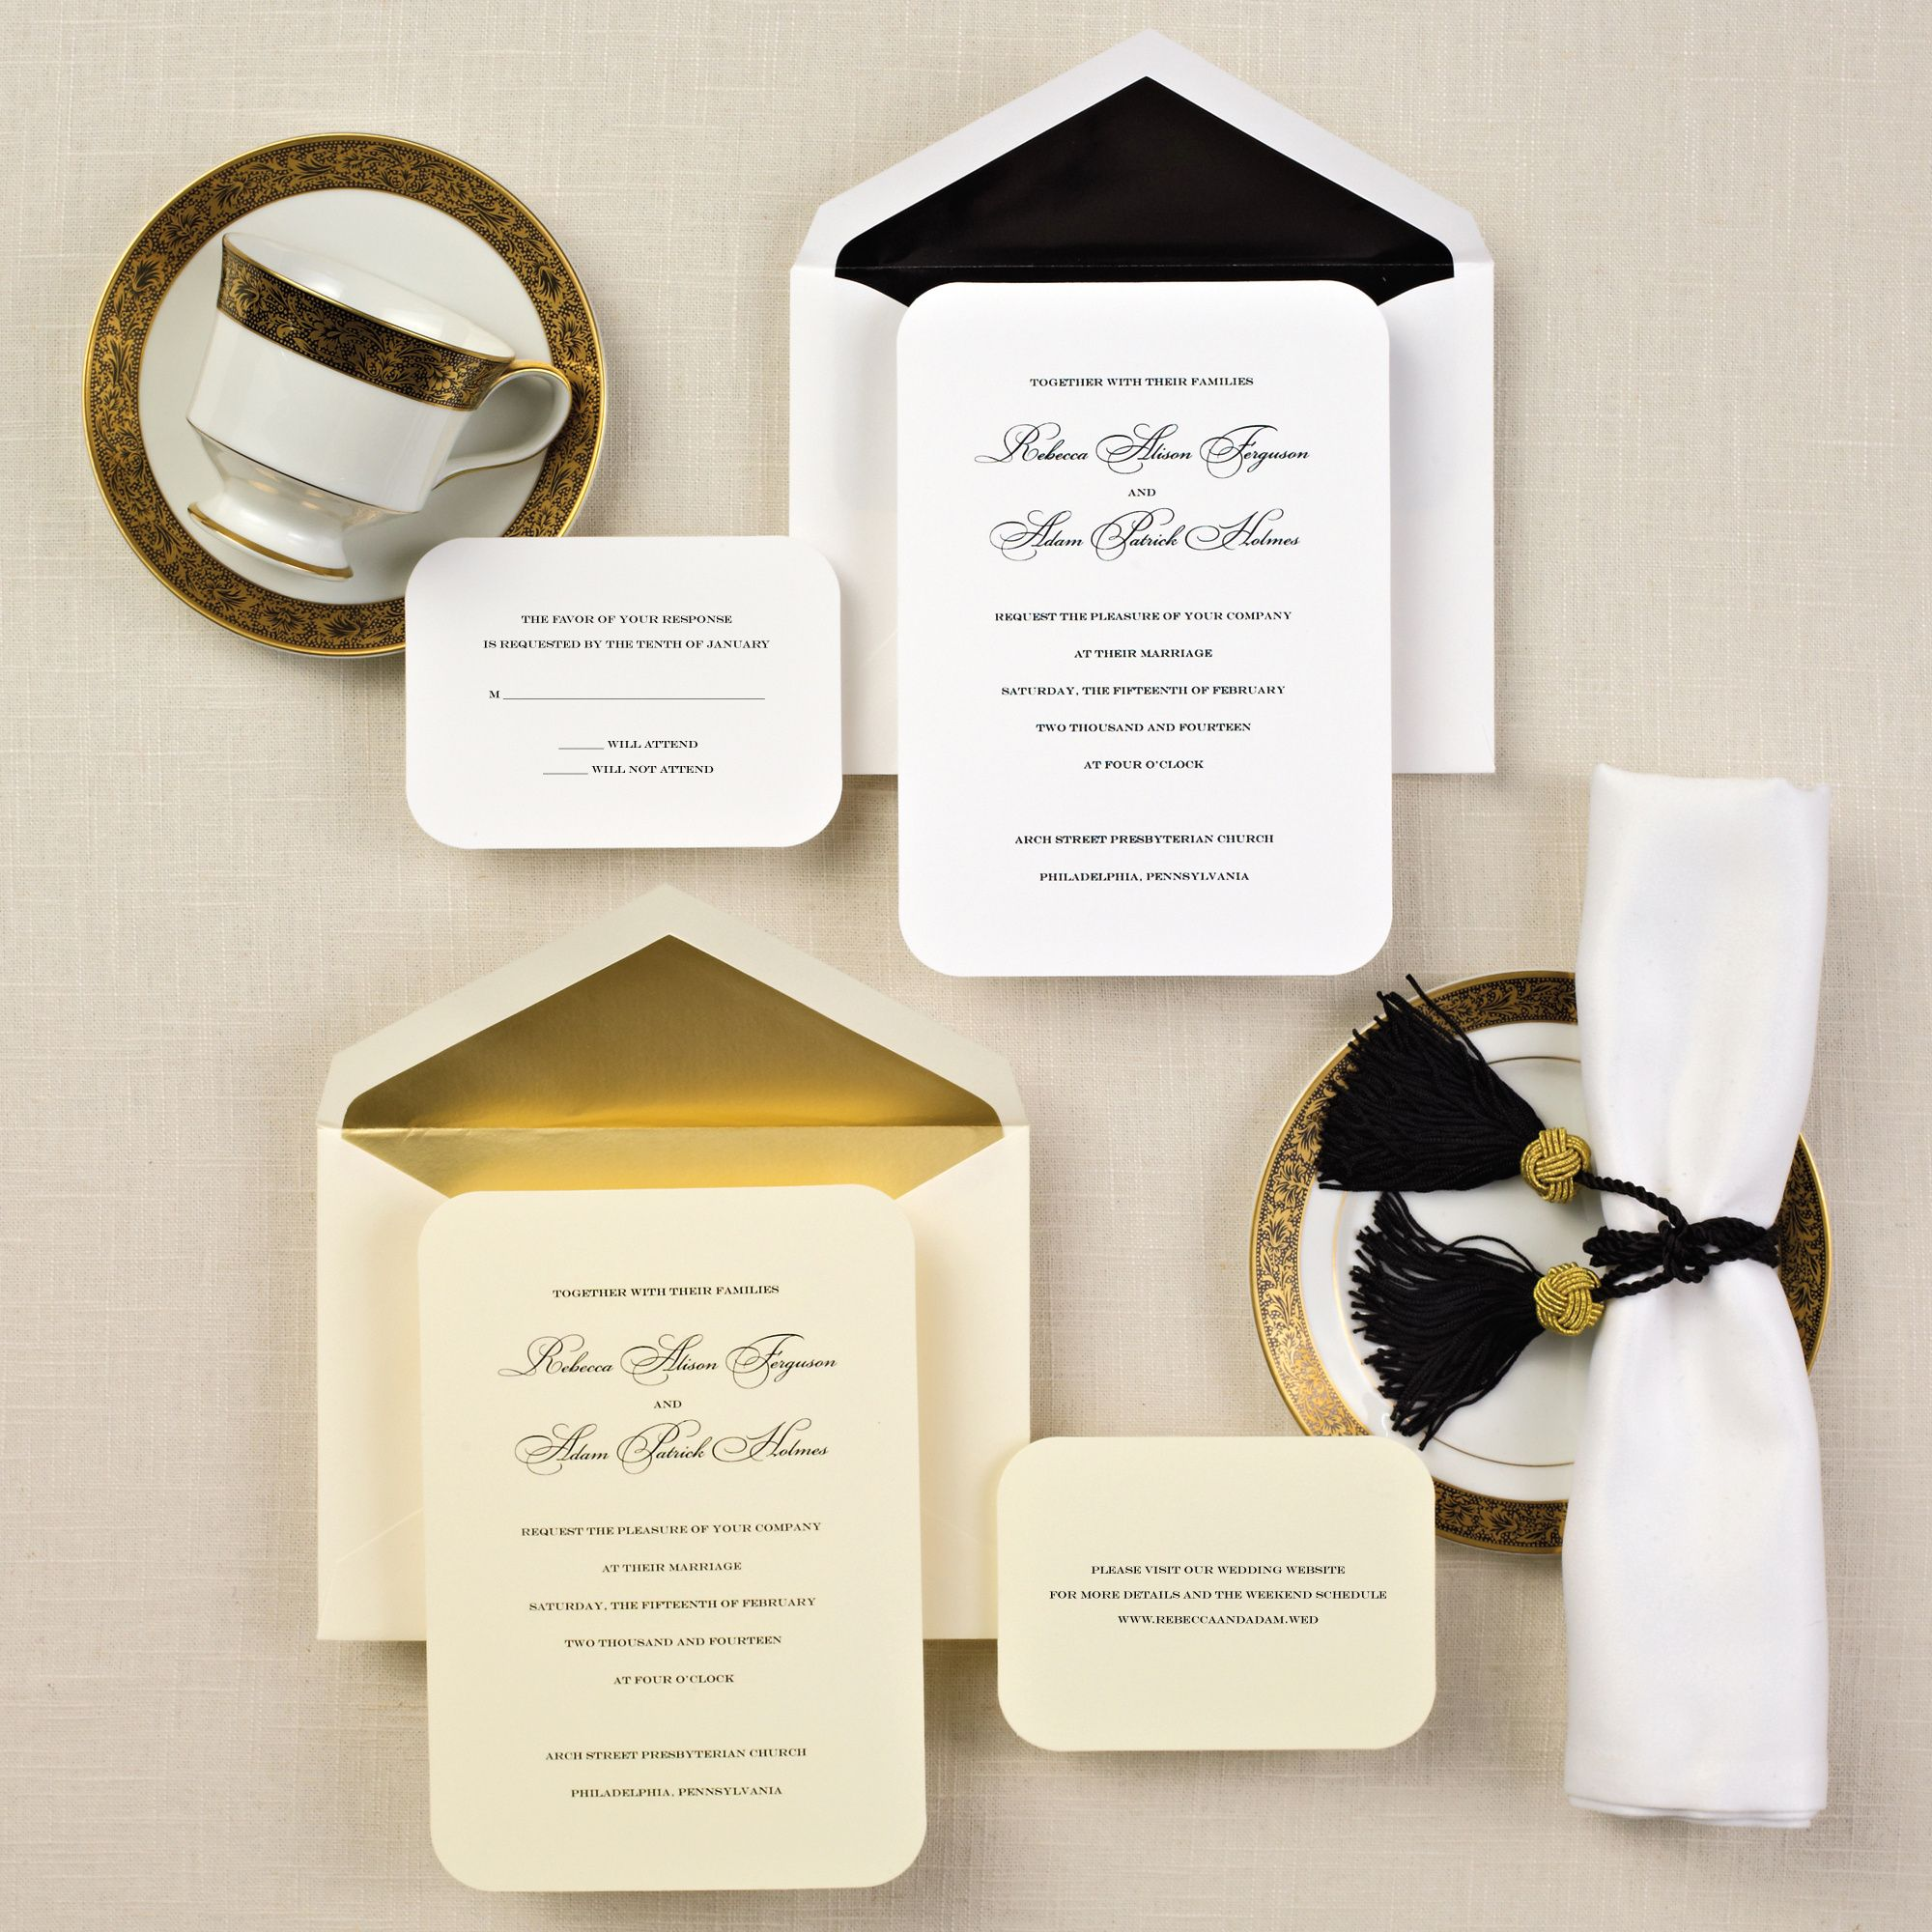 Simple Elegance Wedding Invitation | Discover best ideas about ...